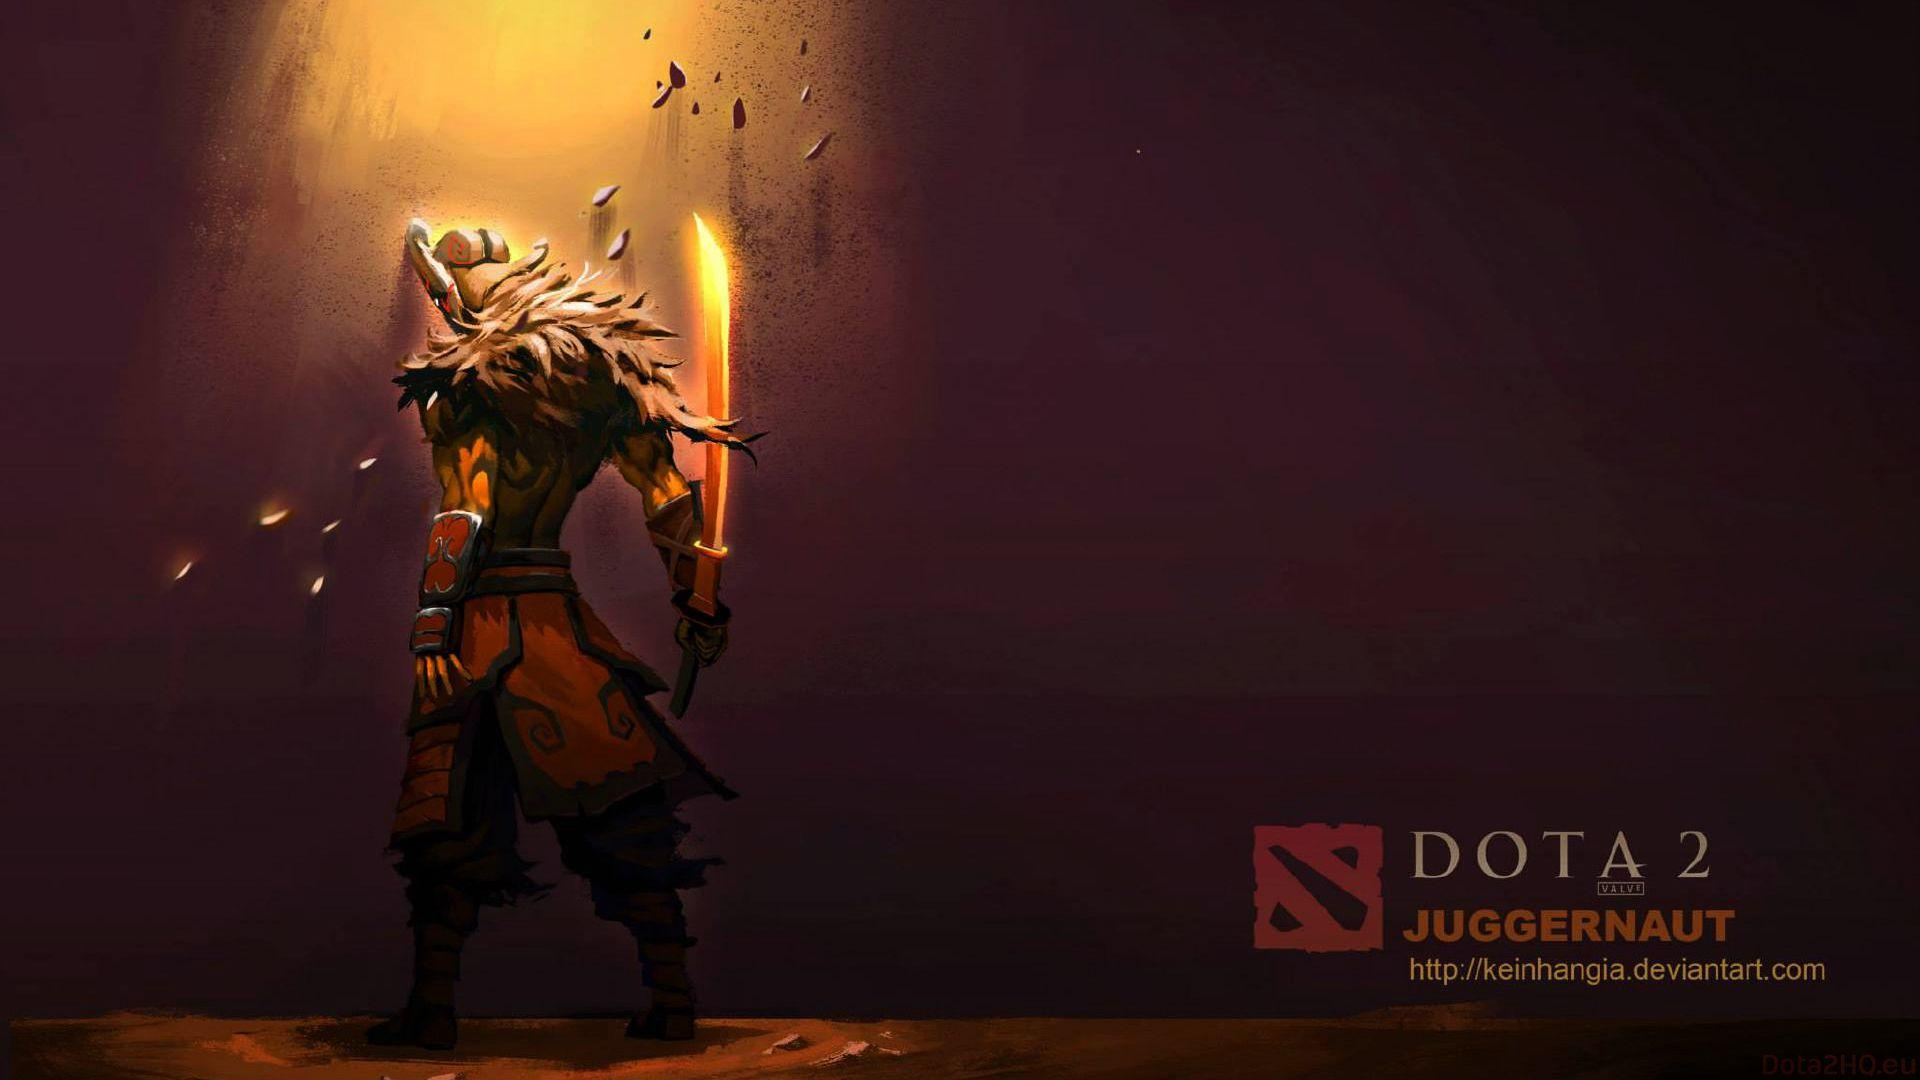 Dota 2 Wallpaper Hd (24)